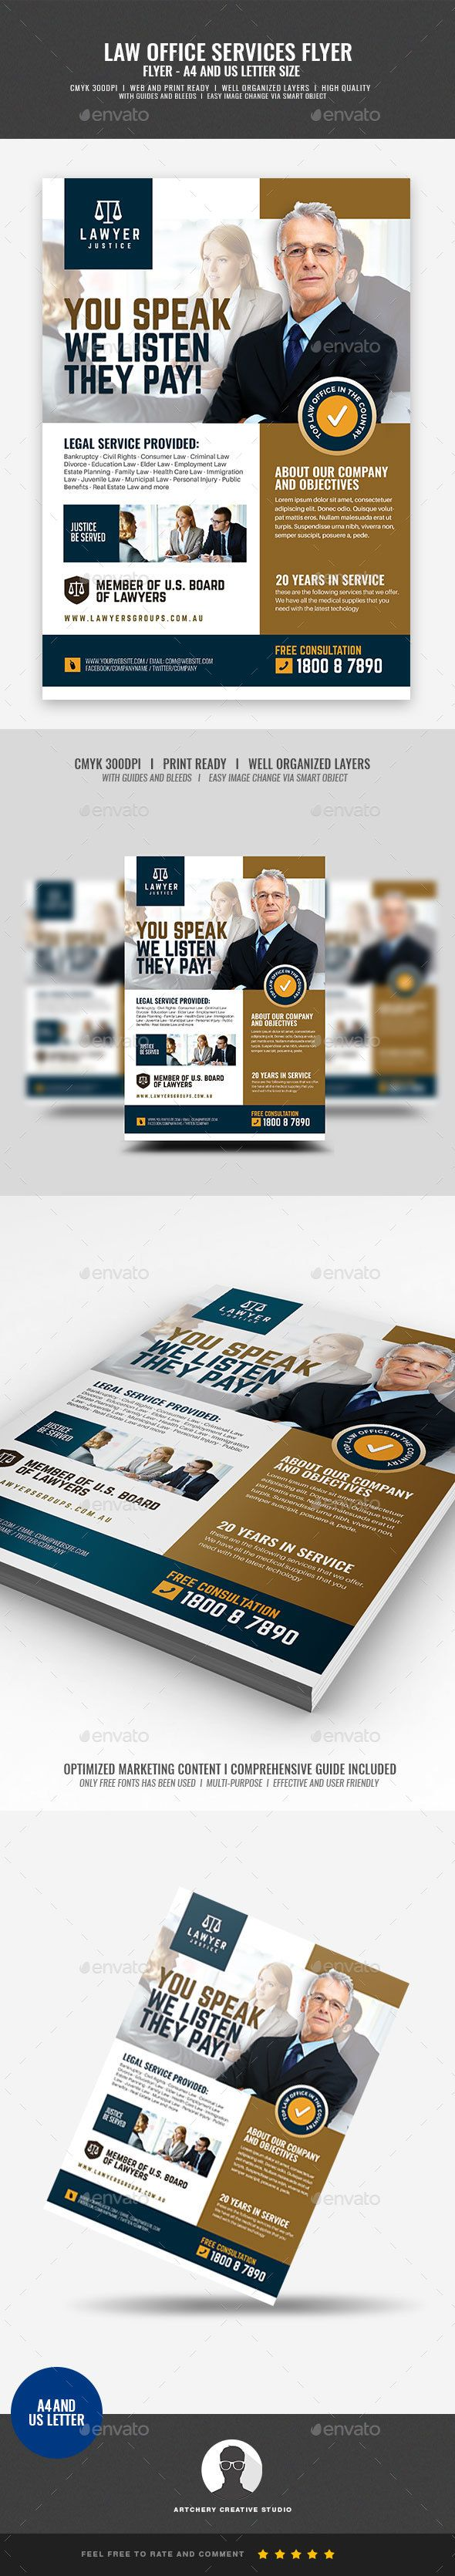 Law Firm and Legal Services Flyer #legal #bar exam  • Download here → https://graphicriver.net/item/law-firm-and-legal-services-flyer/21276872?ref=pxcr